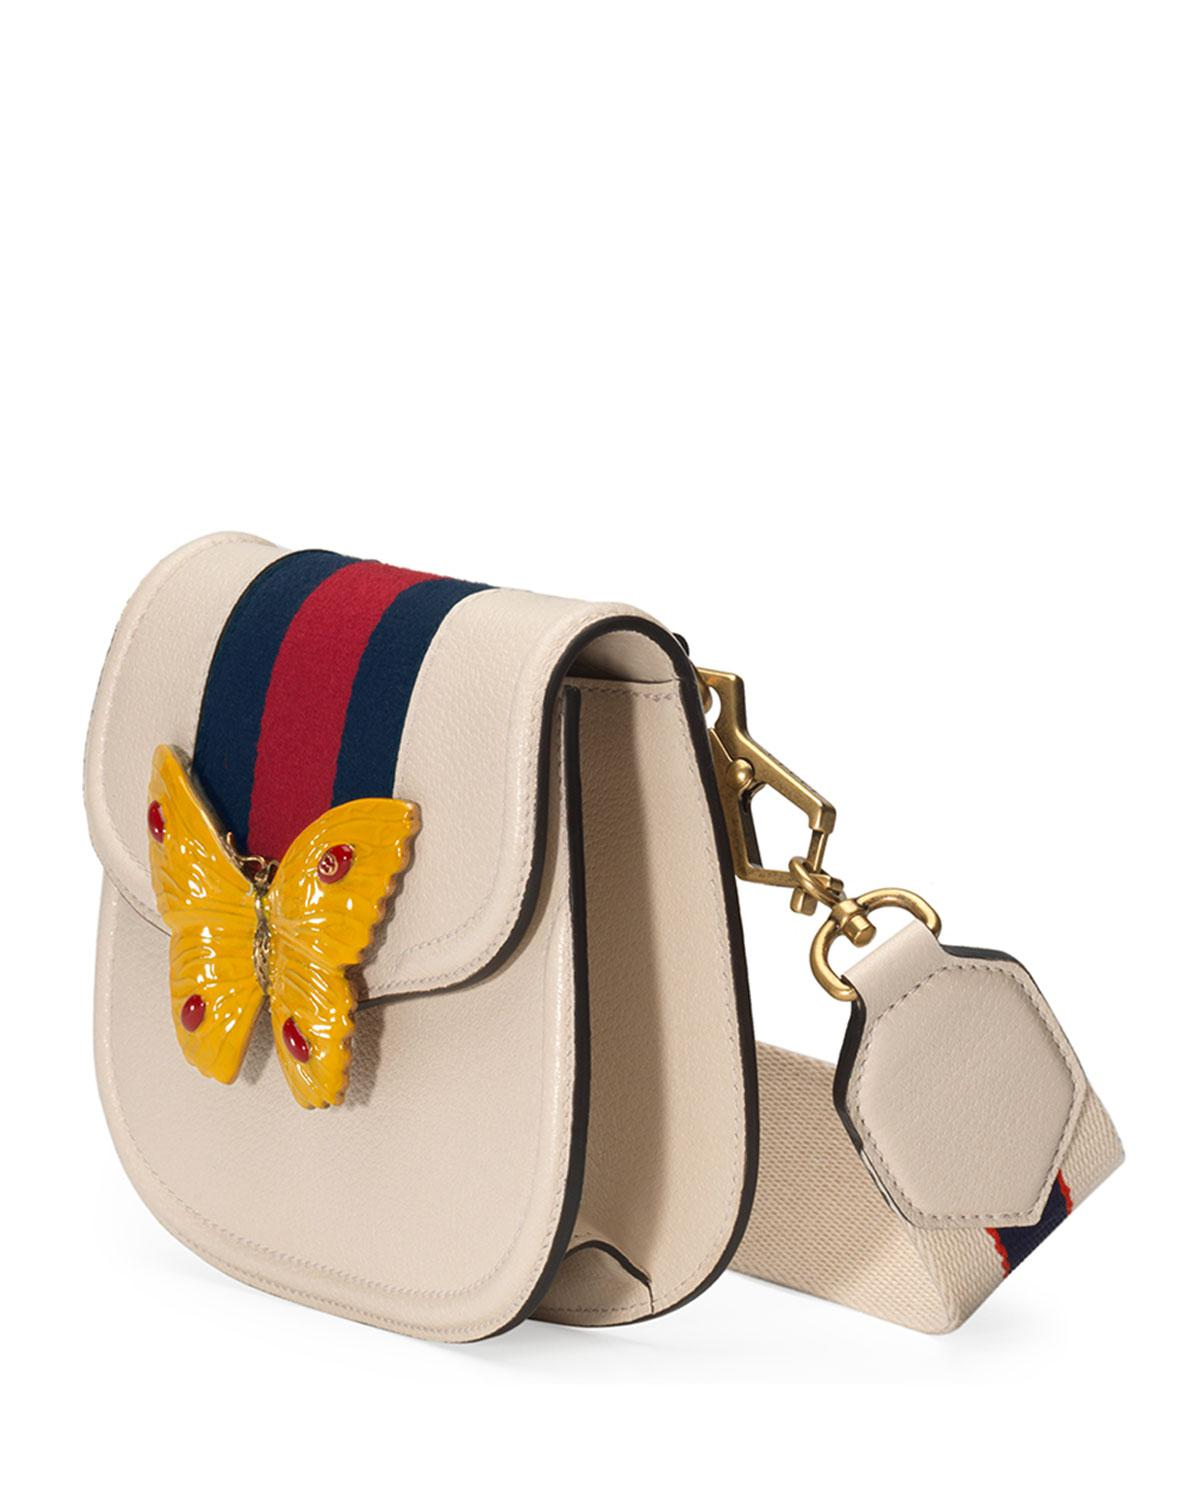 8676be2b5 Gucci Linea Totem Small Leather Shoulder Bag With Butterfly & Web ...